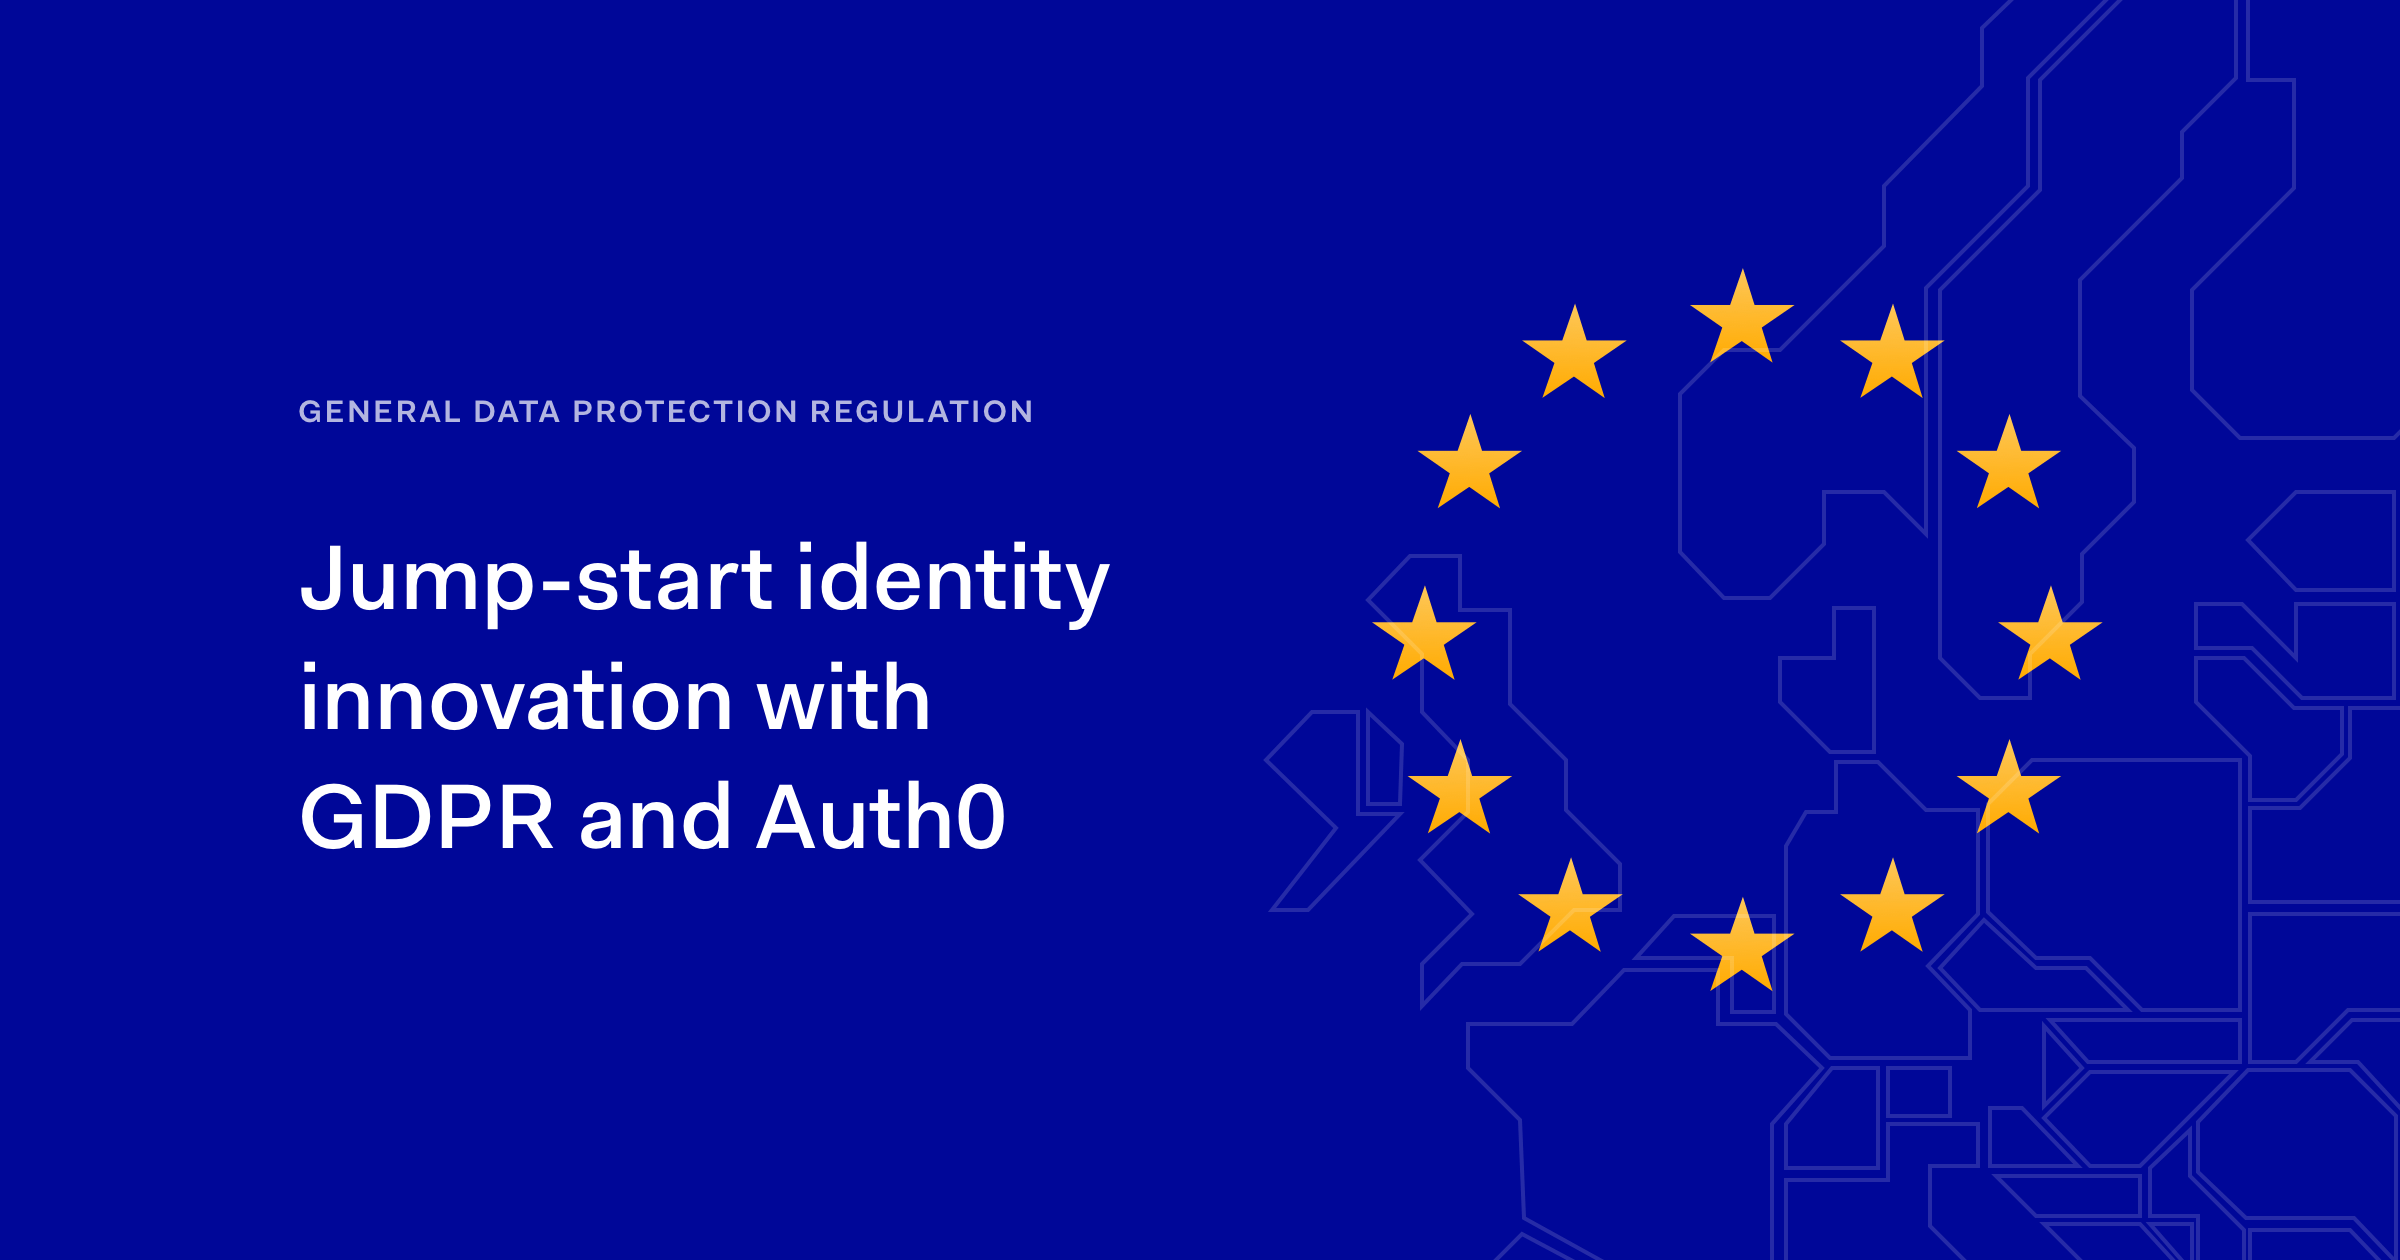 Let GDPR jump-start identity innovation with Auth0